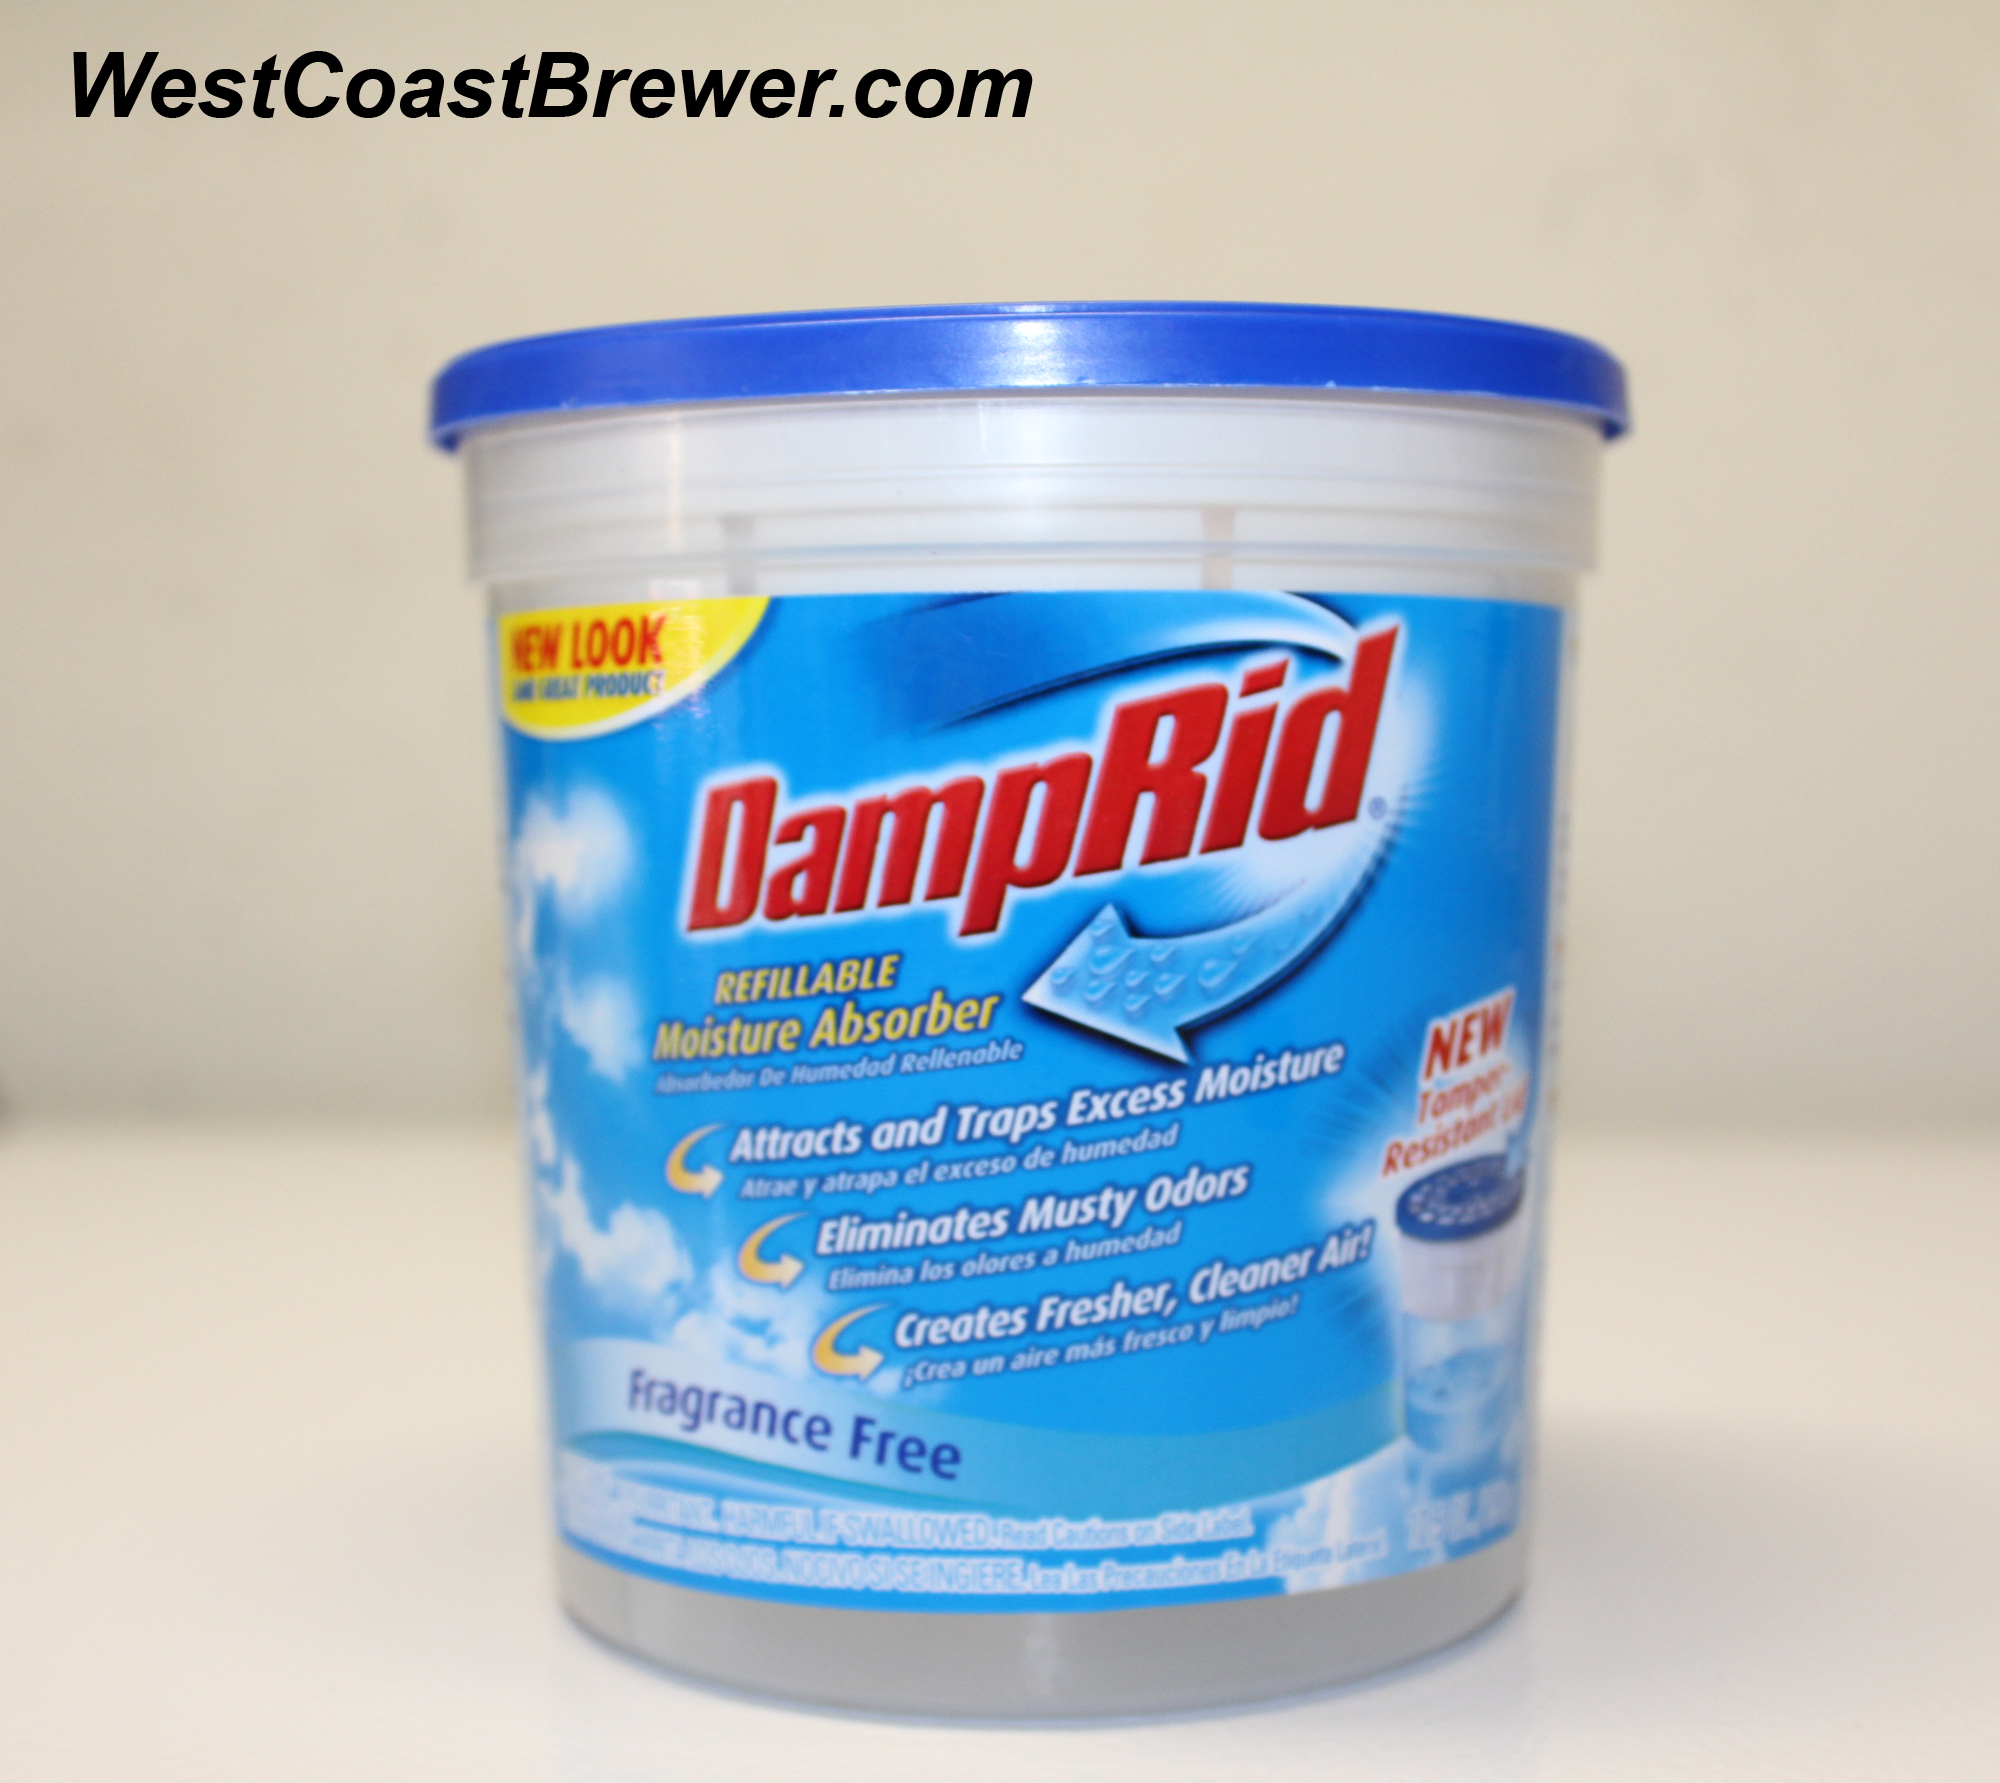 Damprid Product Review Homebrewing Home Brewers Blog